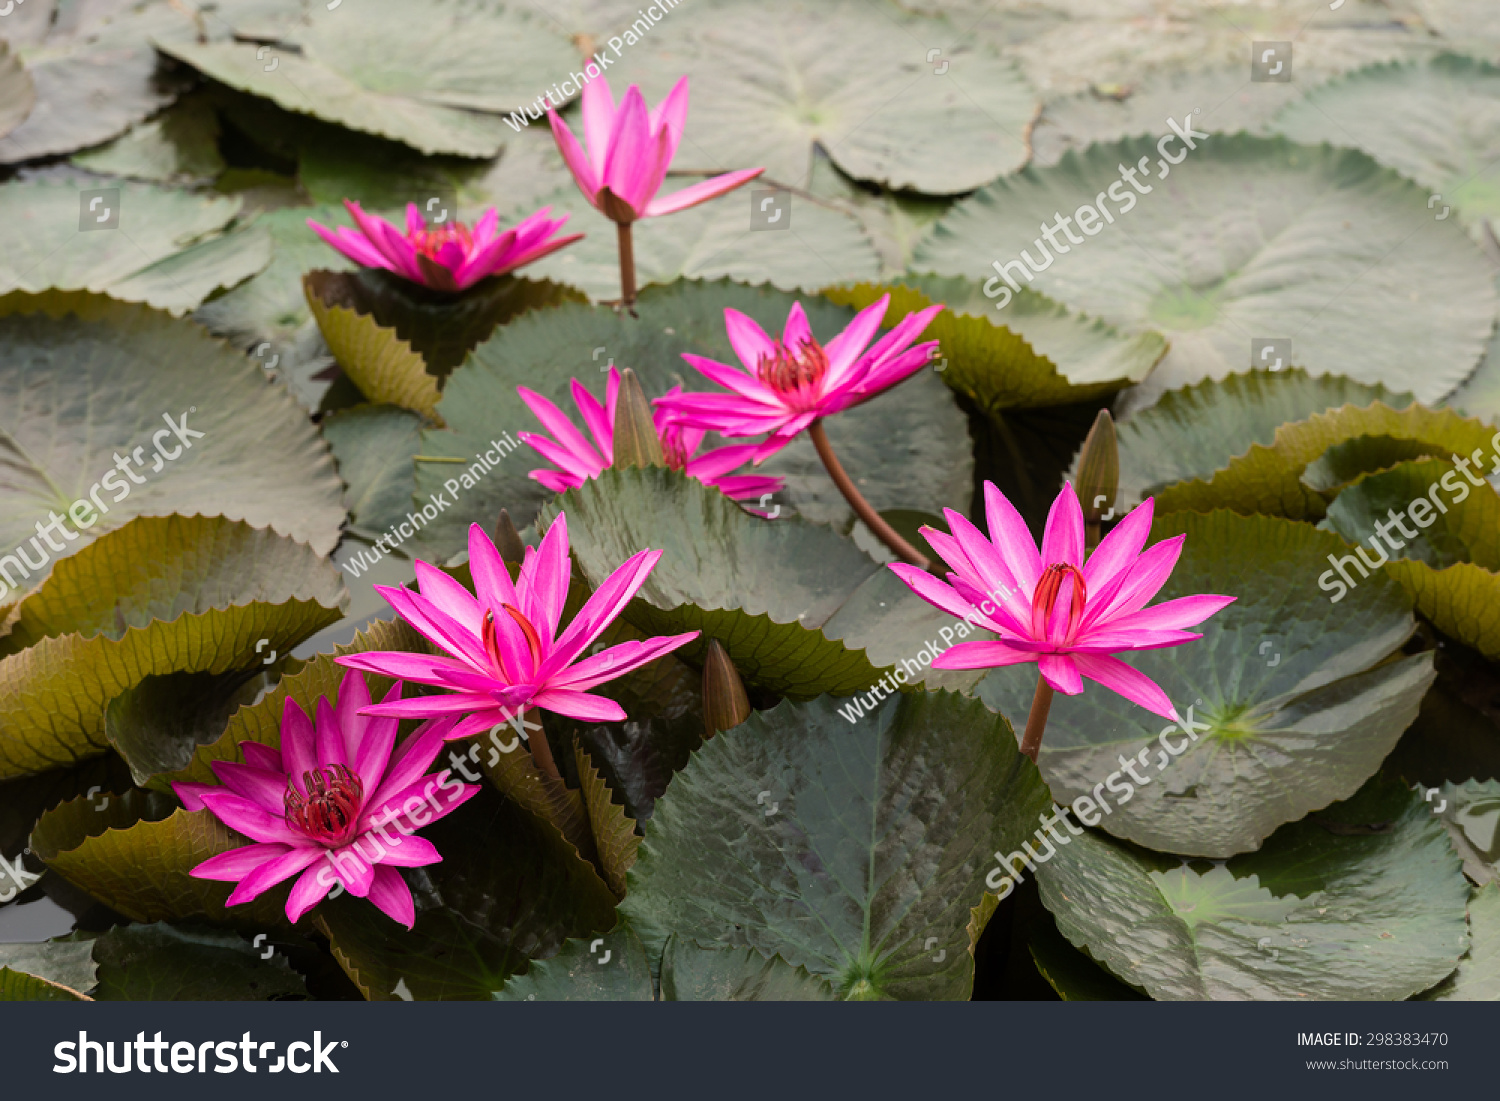 Close Up Pink Color Fresh Lotus Blossom Or Water Lily Flower